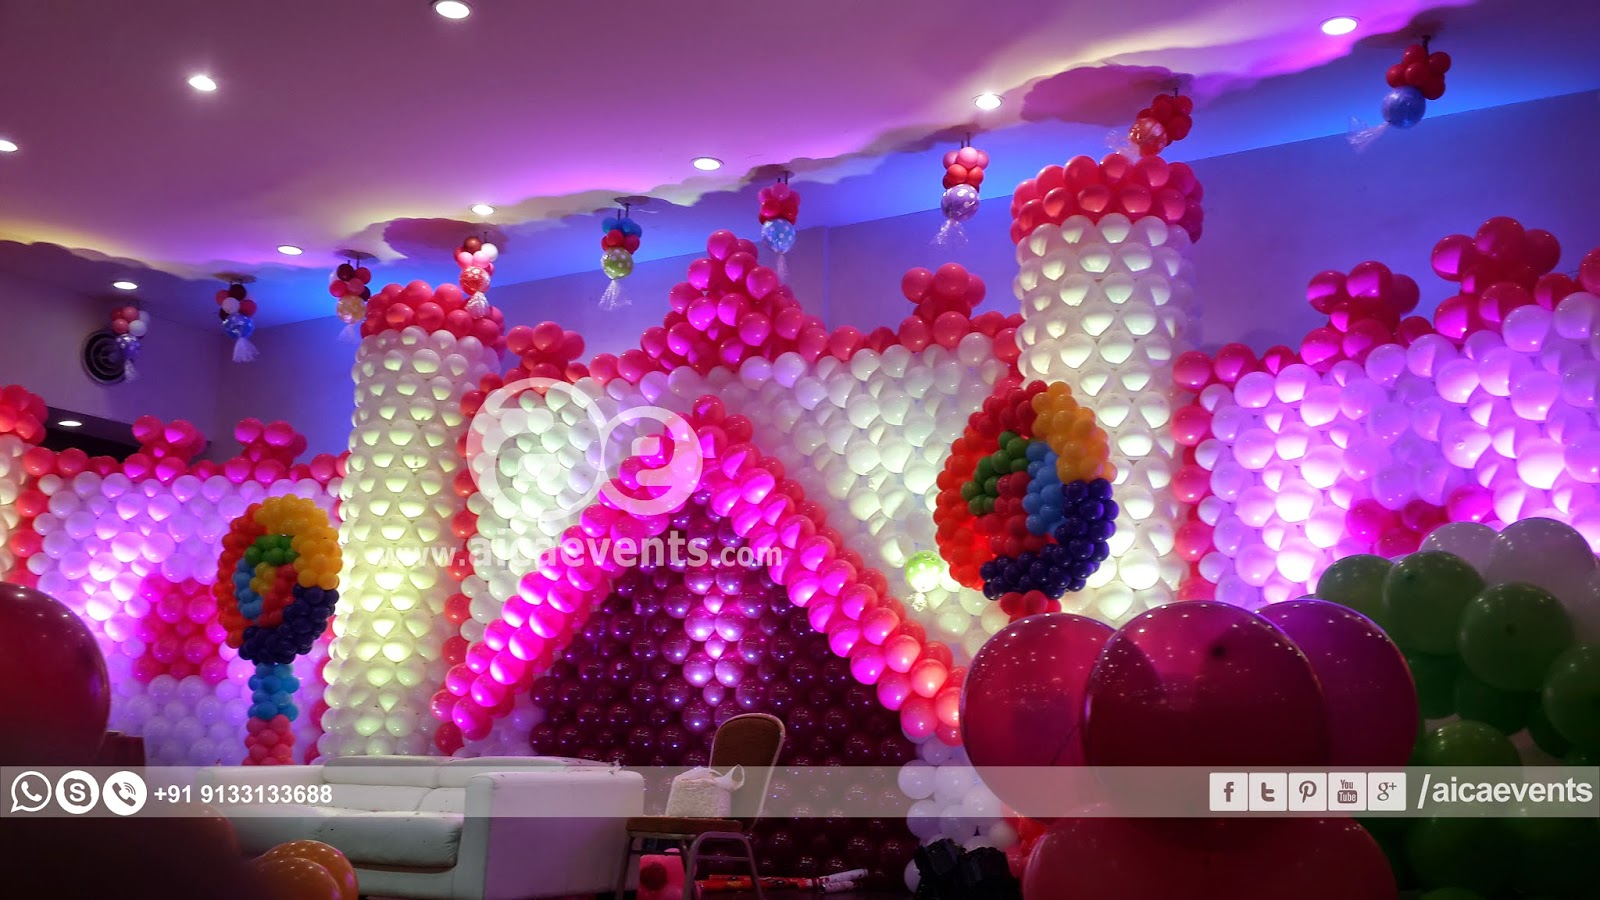 Aicaevents india castle with balloon wall decoration for Balloon decoration images for birthday party